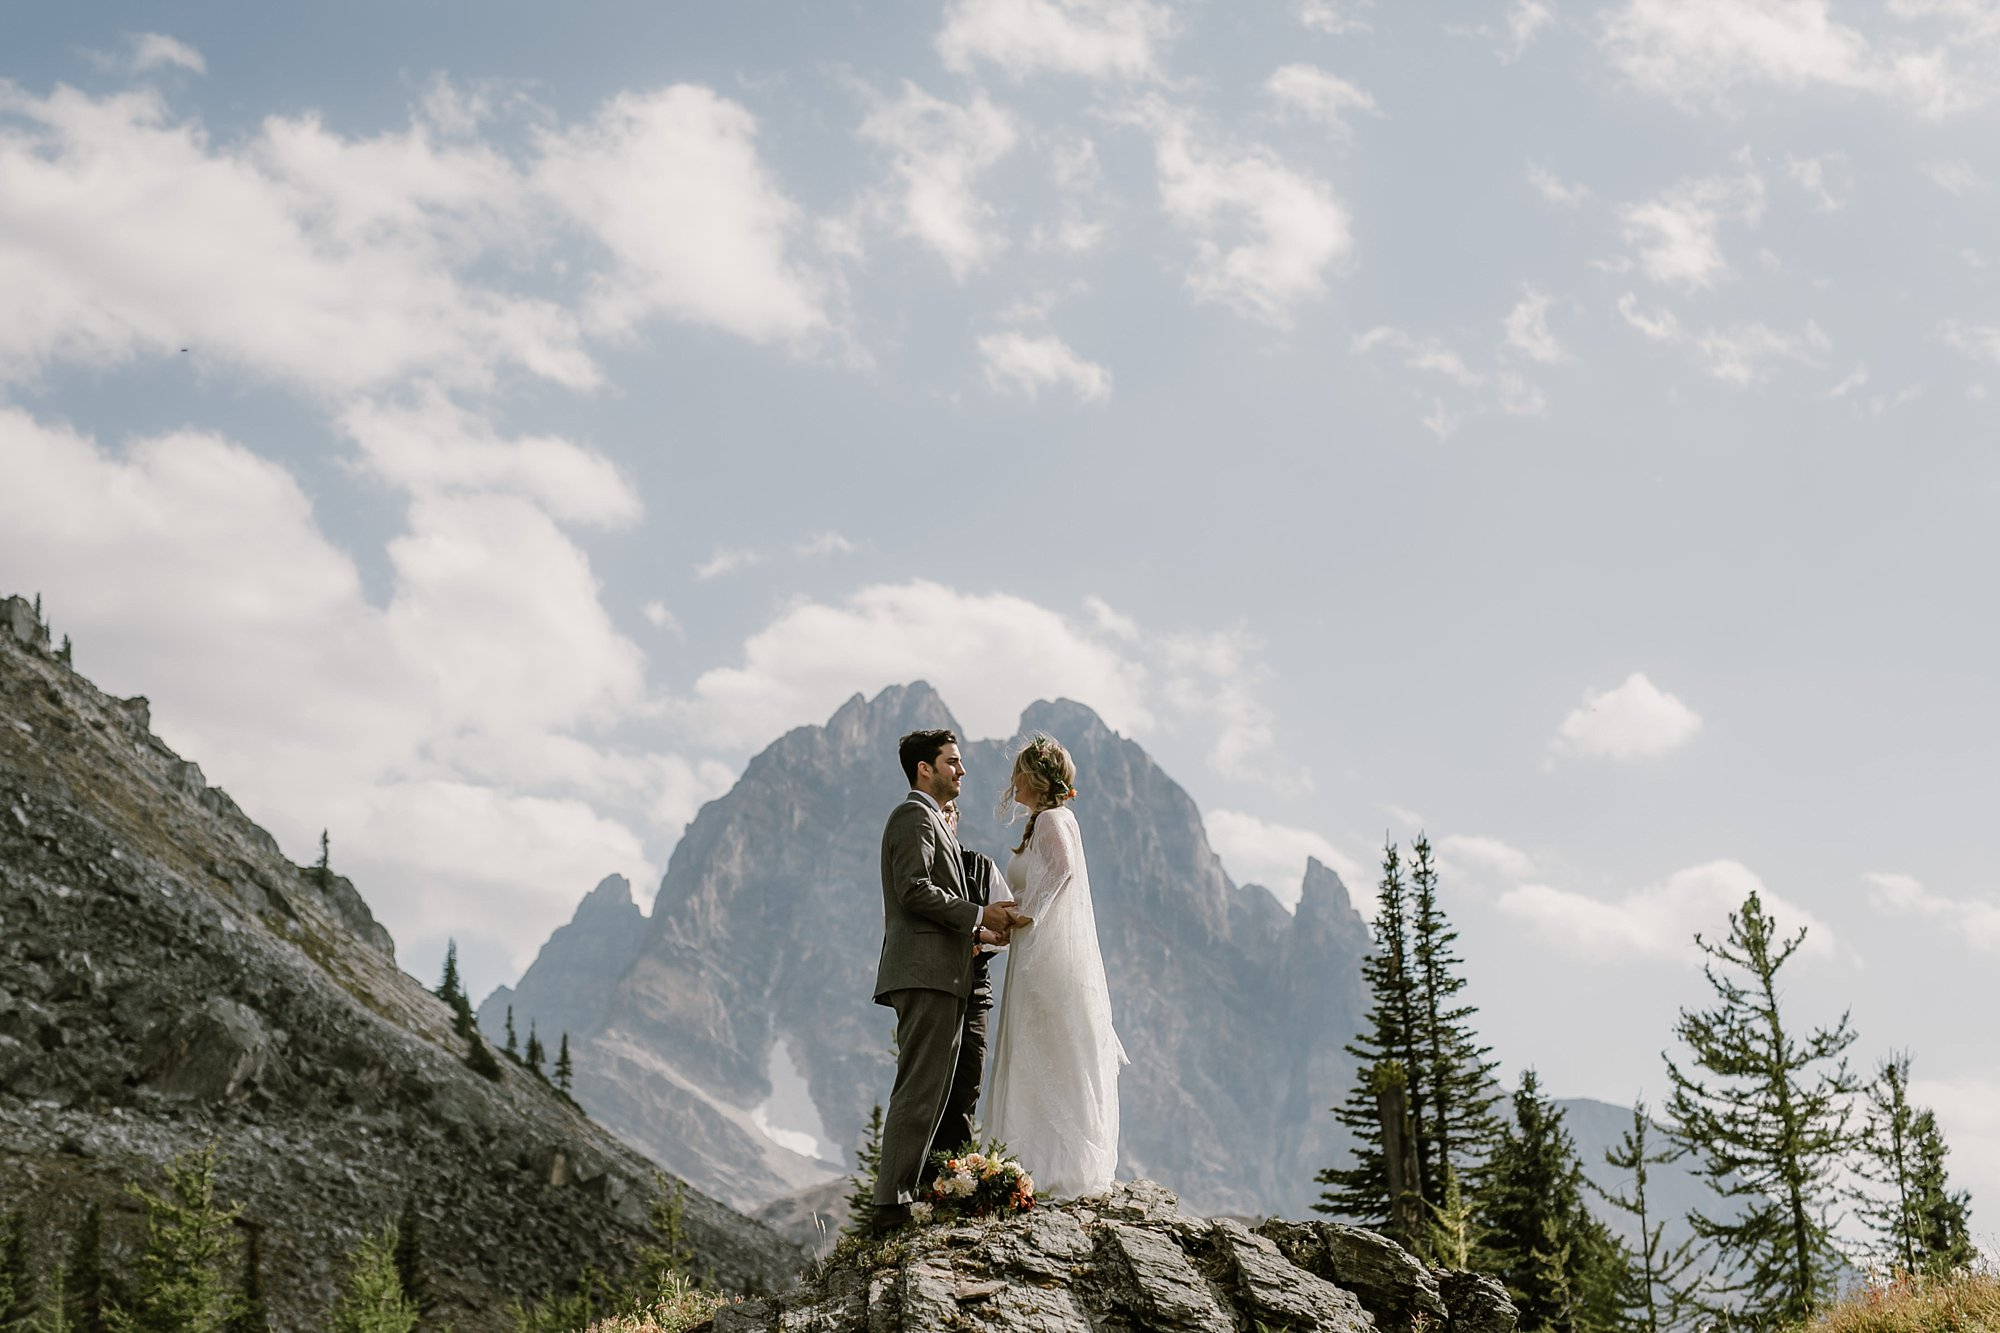 A wedding ceremony in Banff National Park